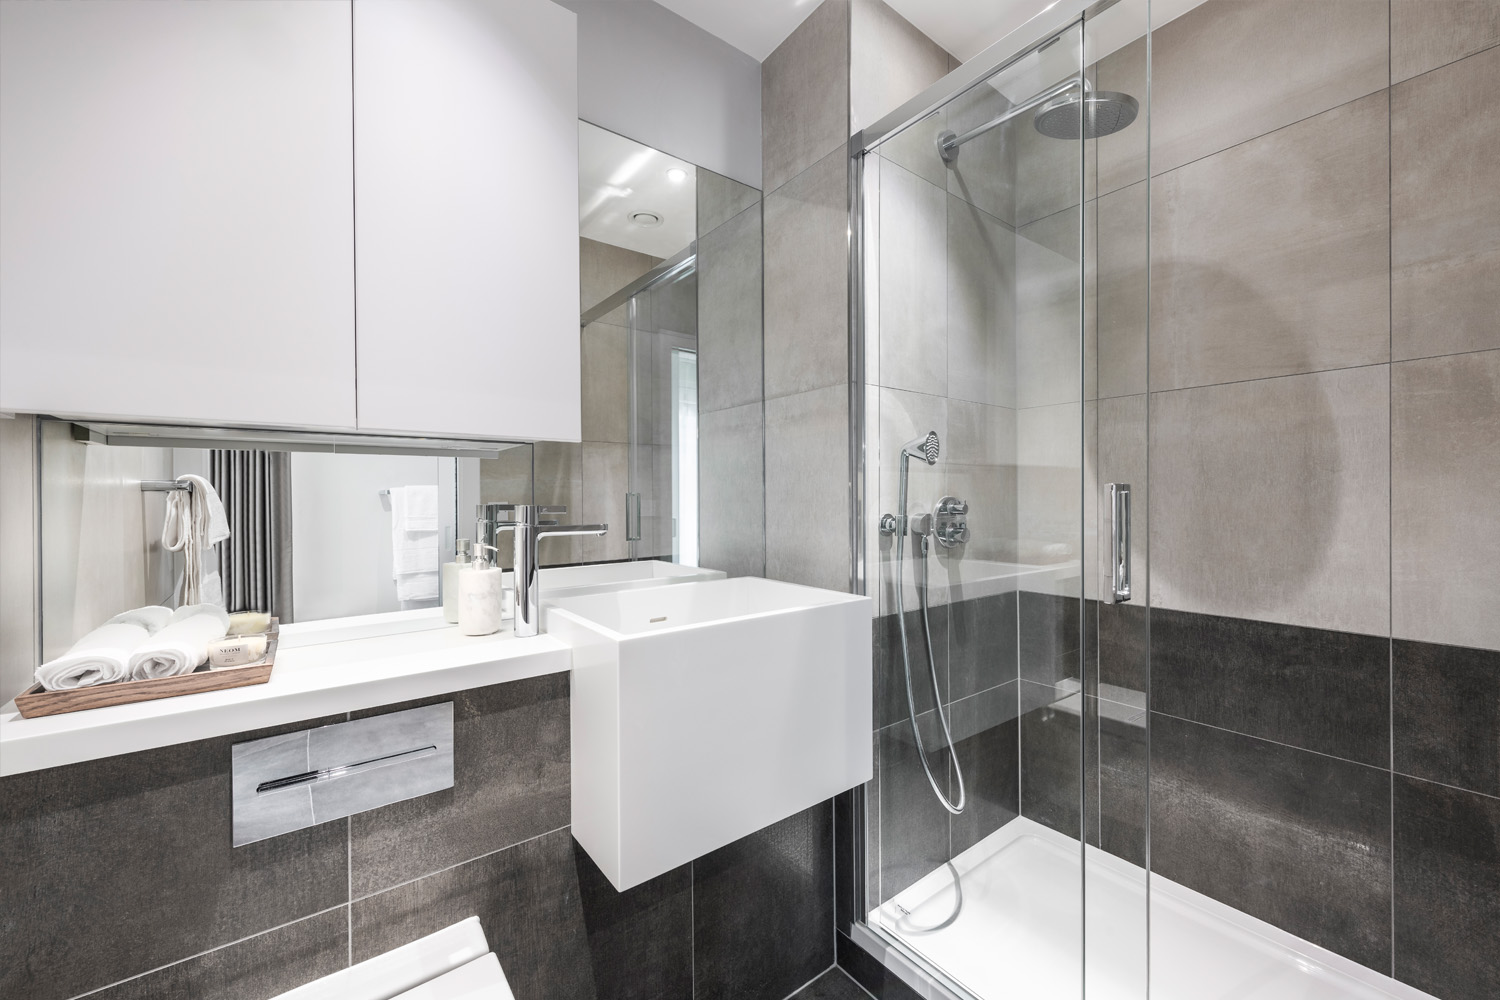 SUNA INTERIOR DESIGN_PEABODY_WHARF ROAD_ISLINGTON_BATHROOM DESIGN 003.jpg